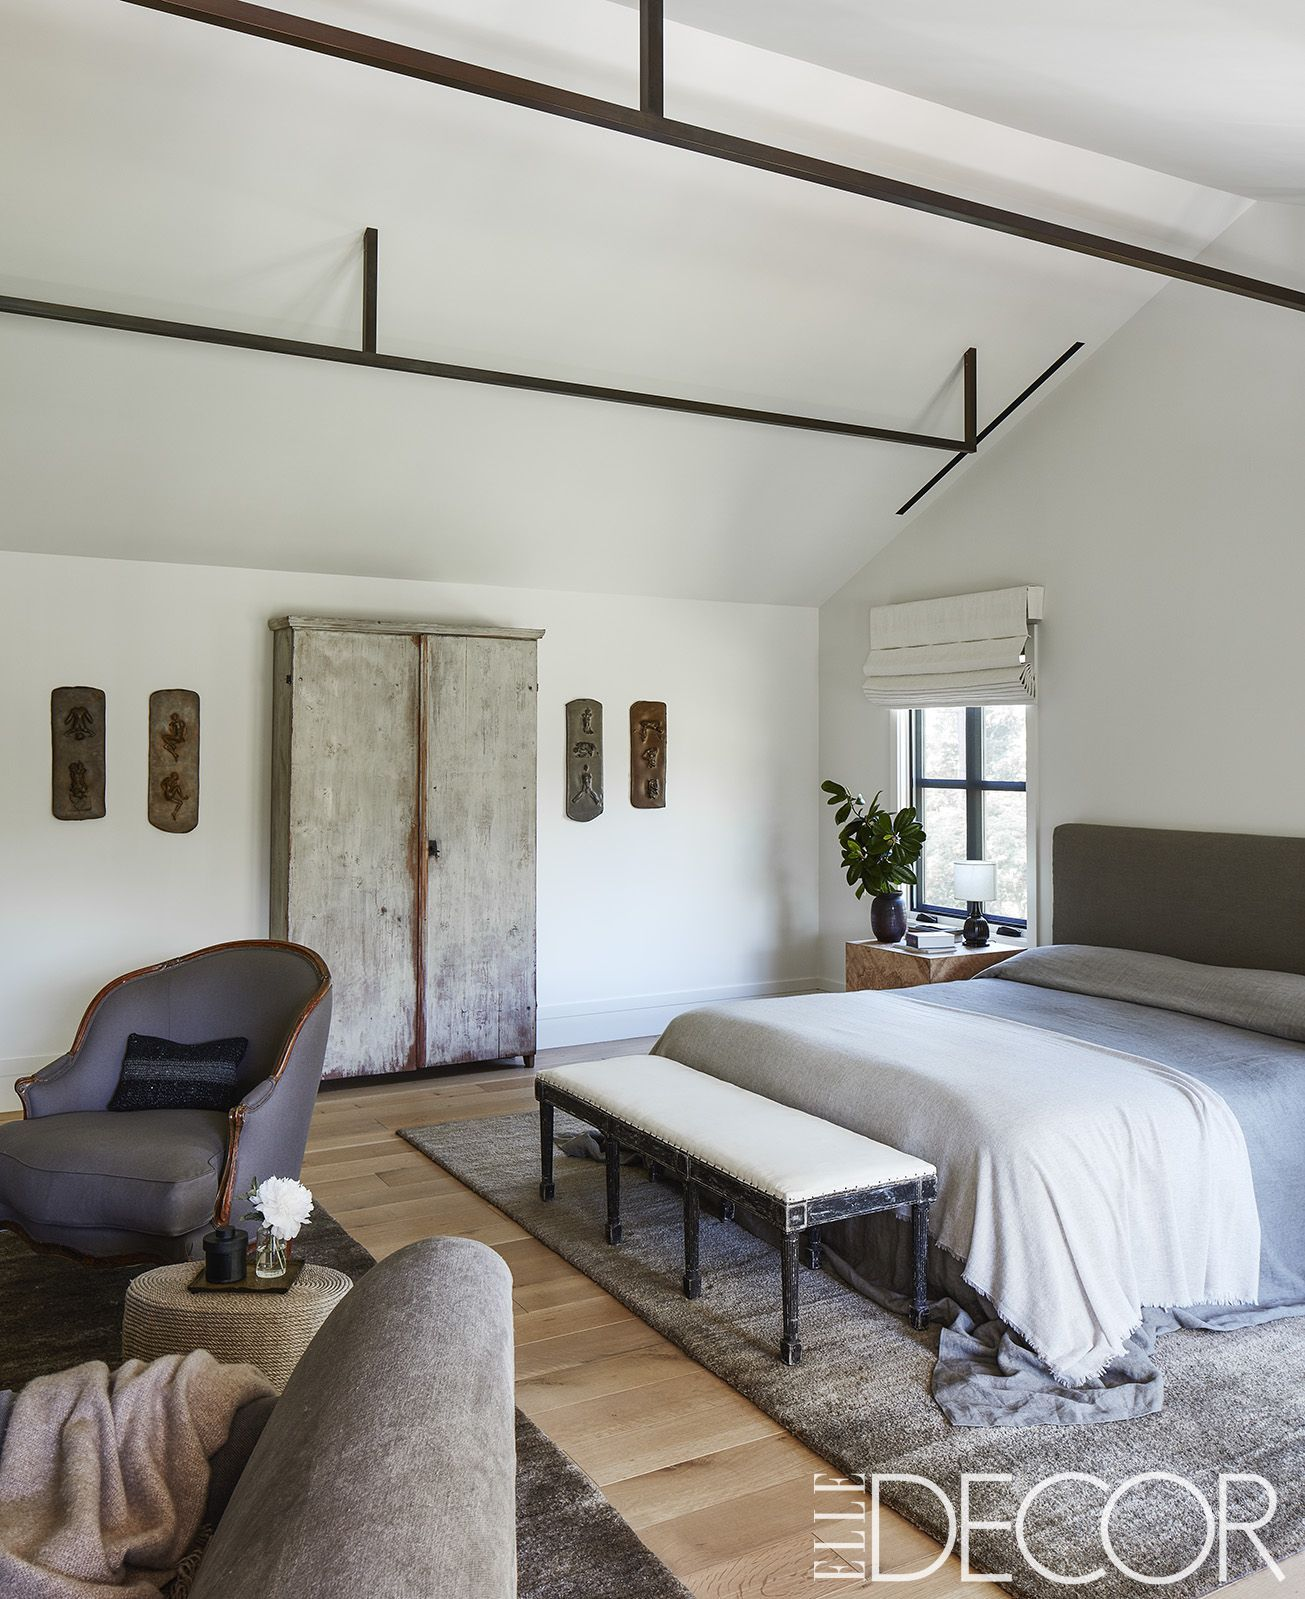 Minimalist Bedroom Design 25 Minimalist Bedrooms That Create A Stylish And Serene Personal